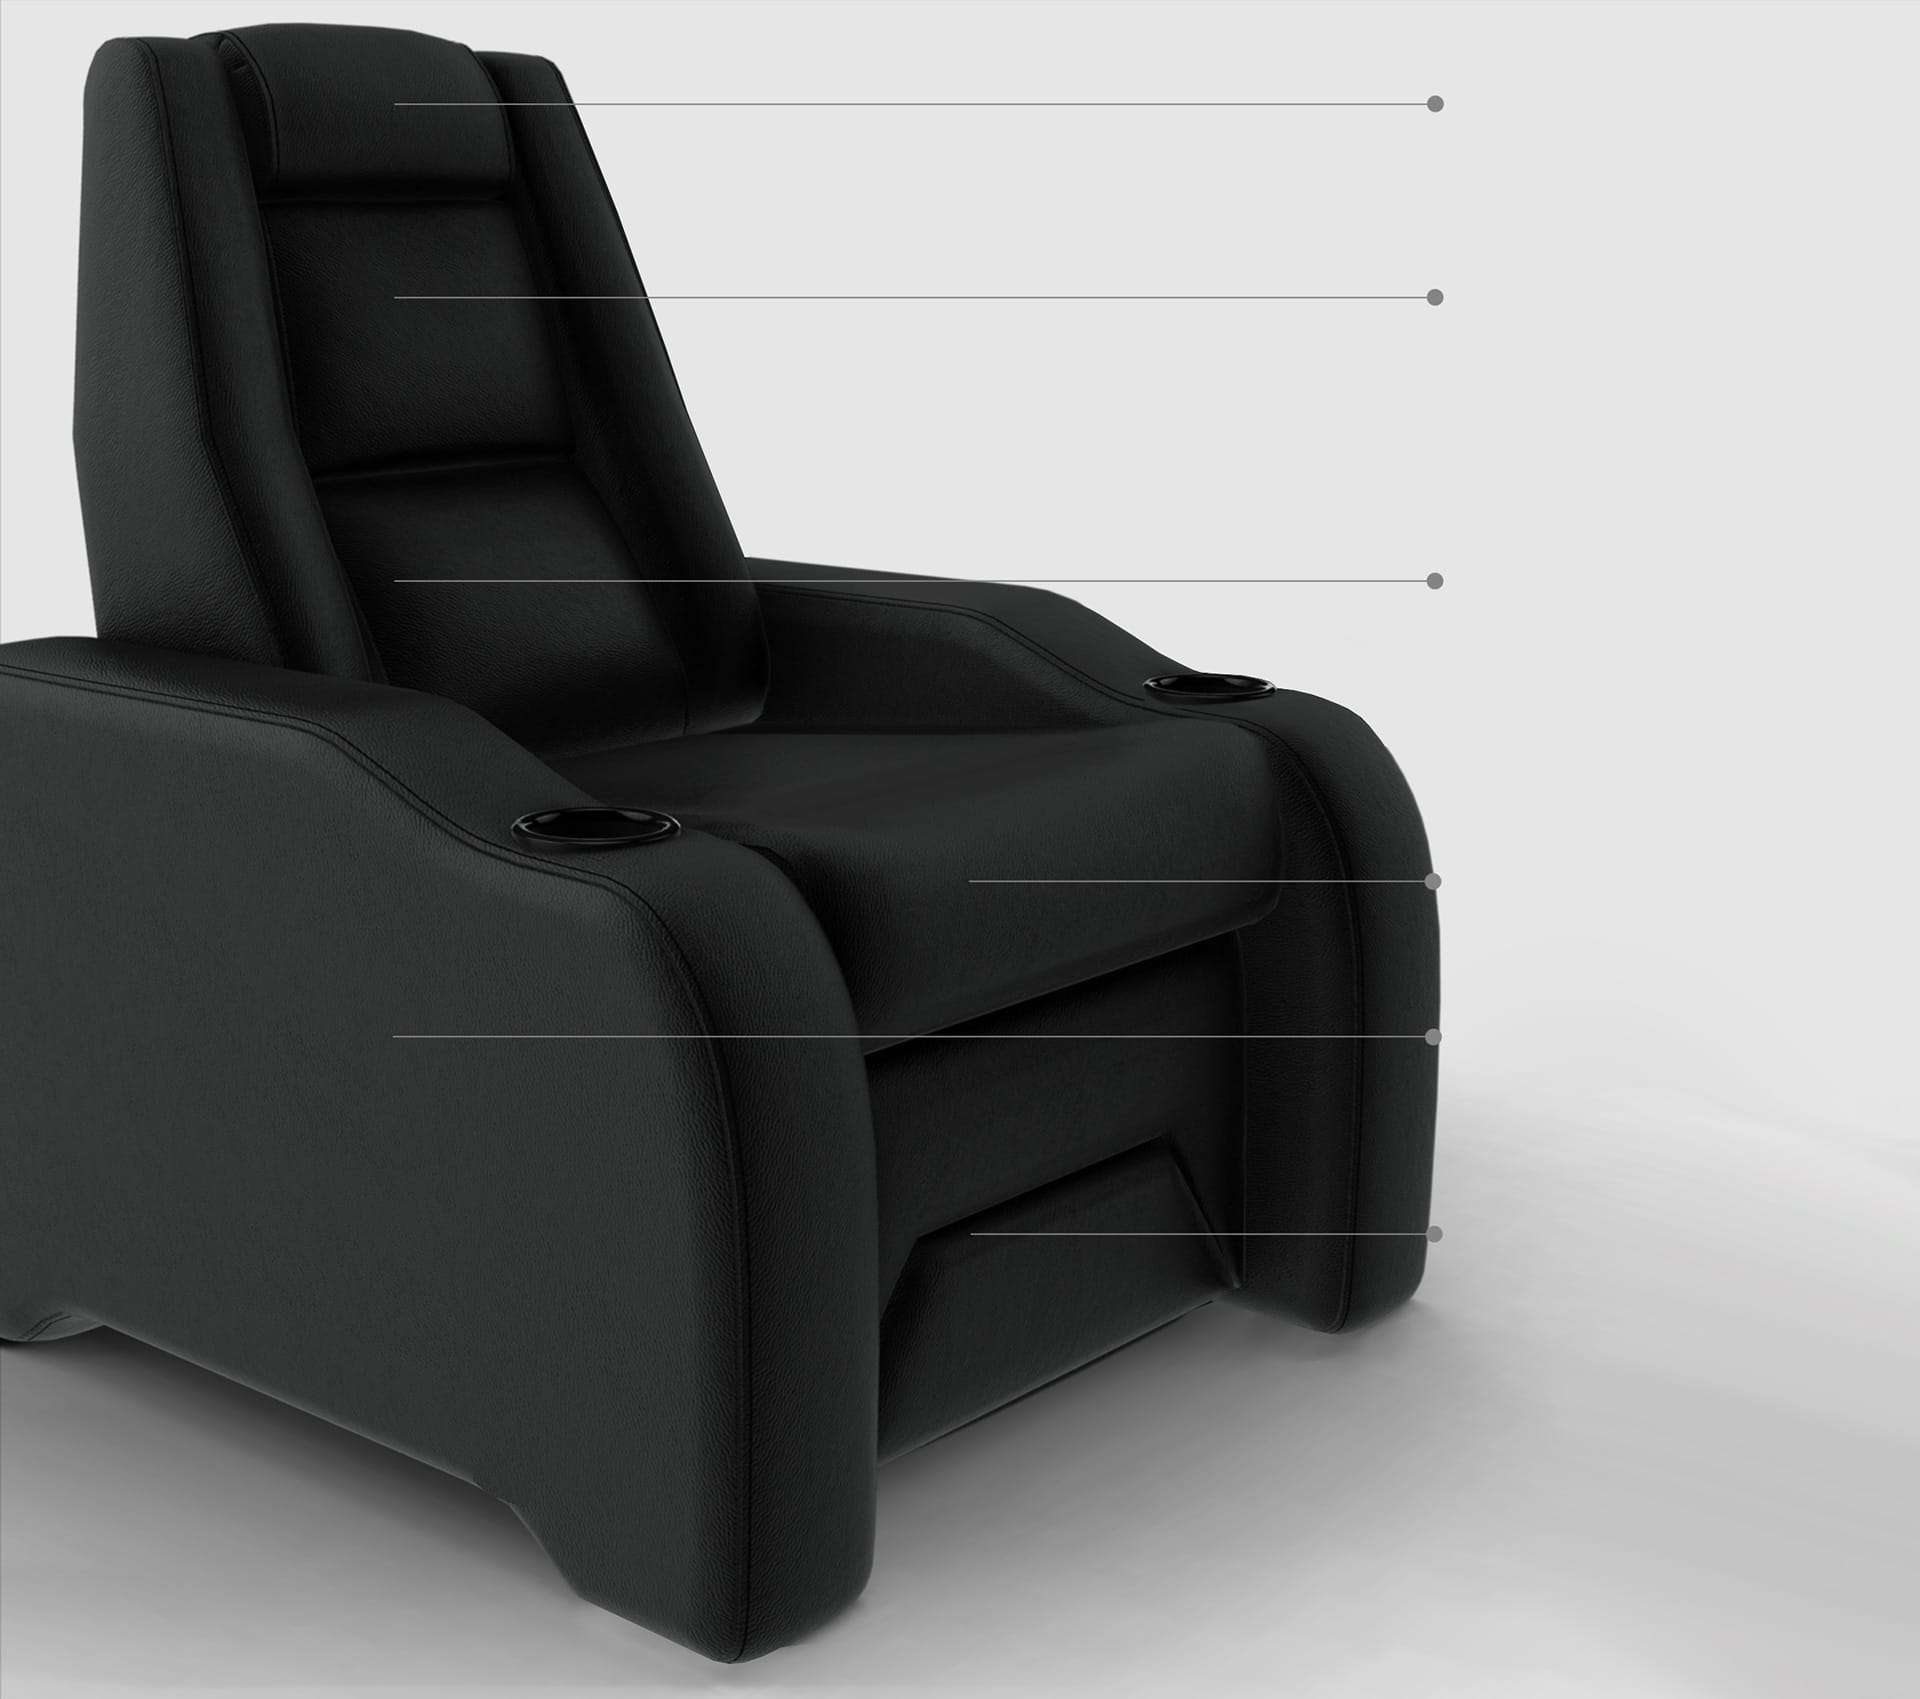 home theater seating points image